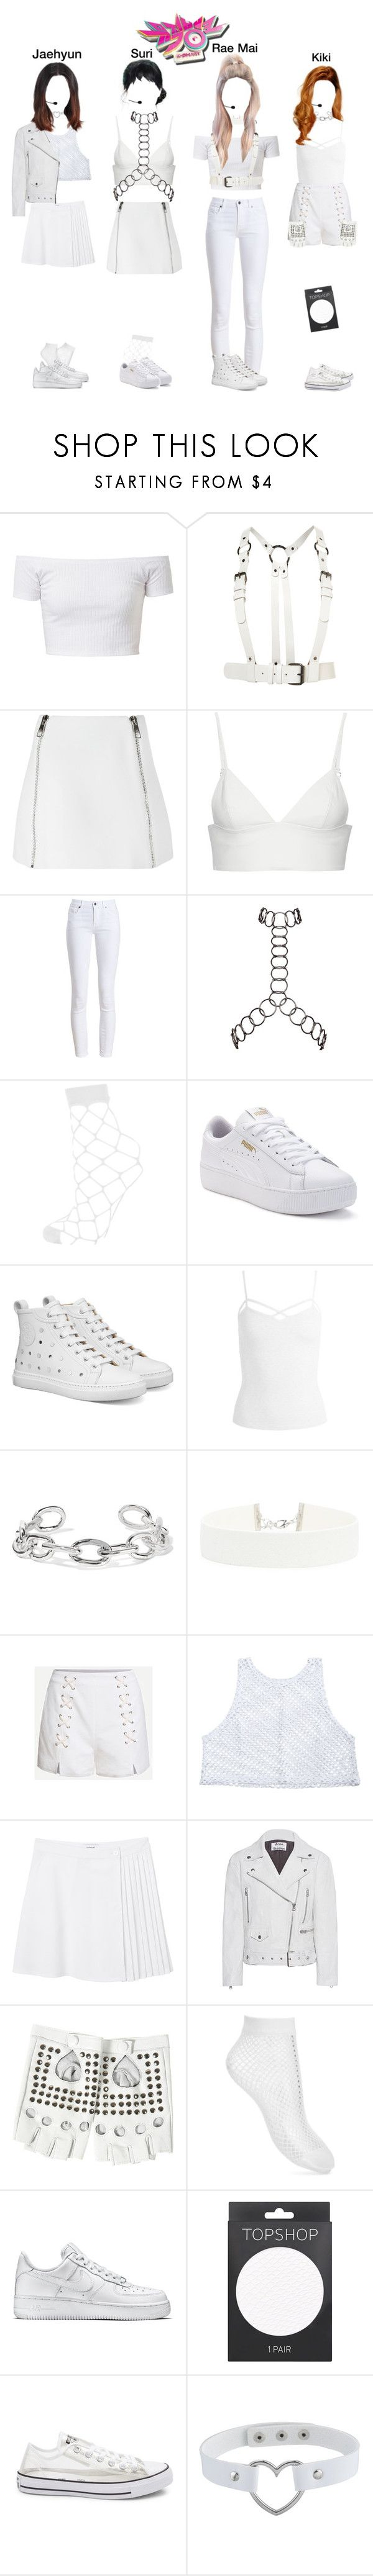 """""""Hazard(위험) - """"Whatta Man"""" Goodbye Stage on Music Bank"""" by epilxgue ❤ liked on Polyvore featuring Neil Barrett, T By Alexander Wang, Barbour, Fannie Schiavoni, Topshop, Puma, Sans Souci, Jennifer Fisher, Forever 21 and Monki"""